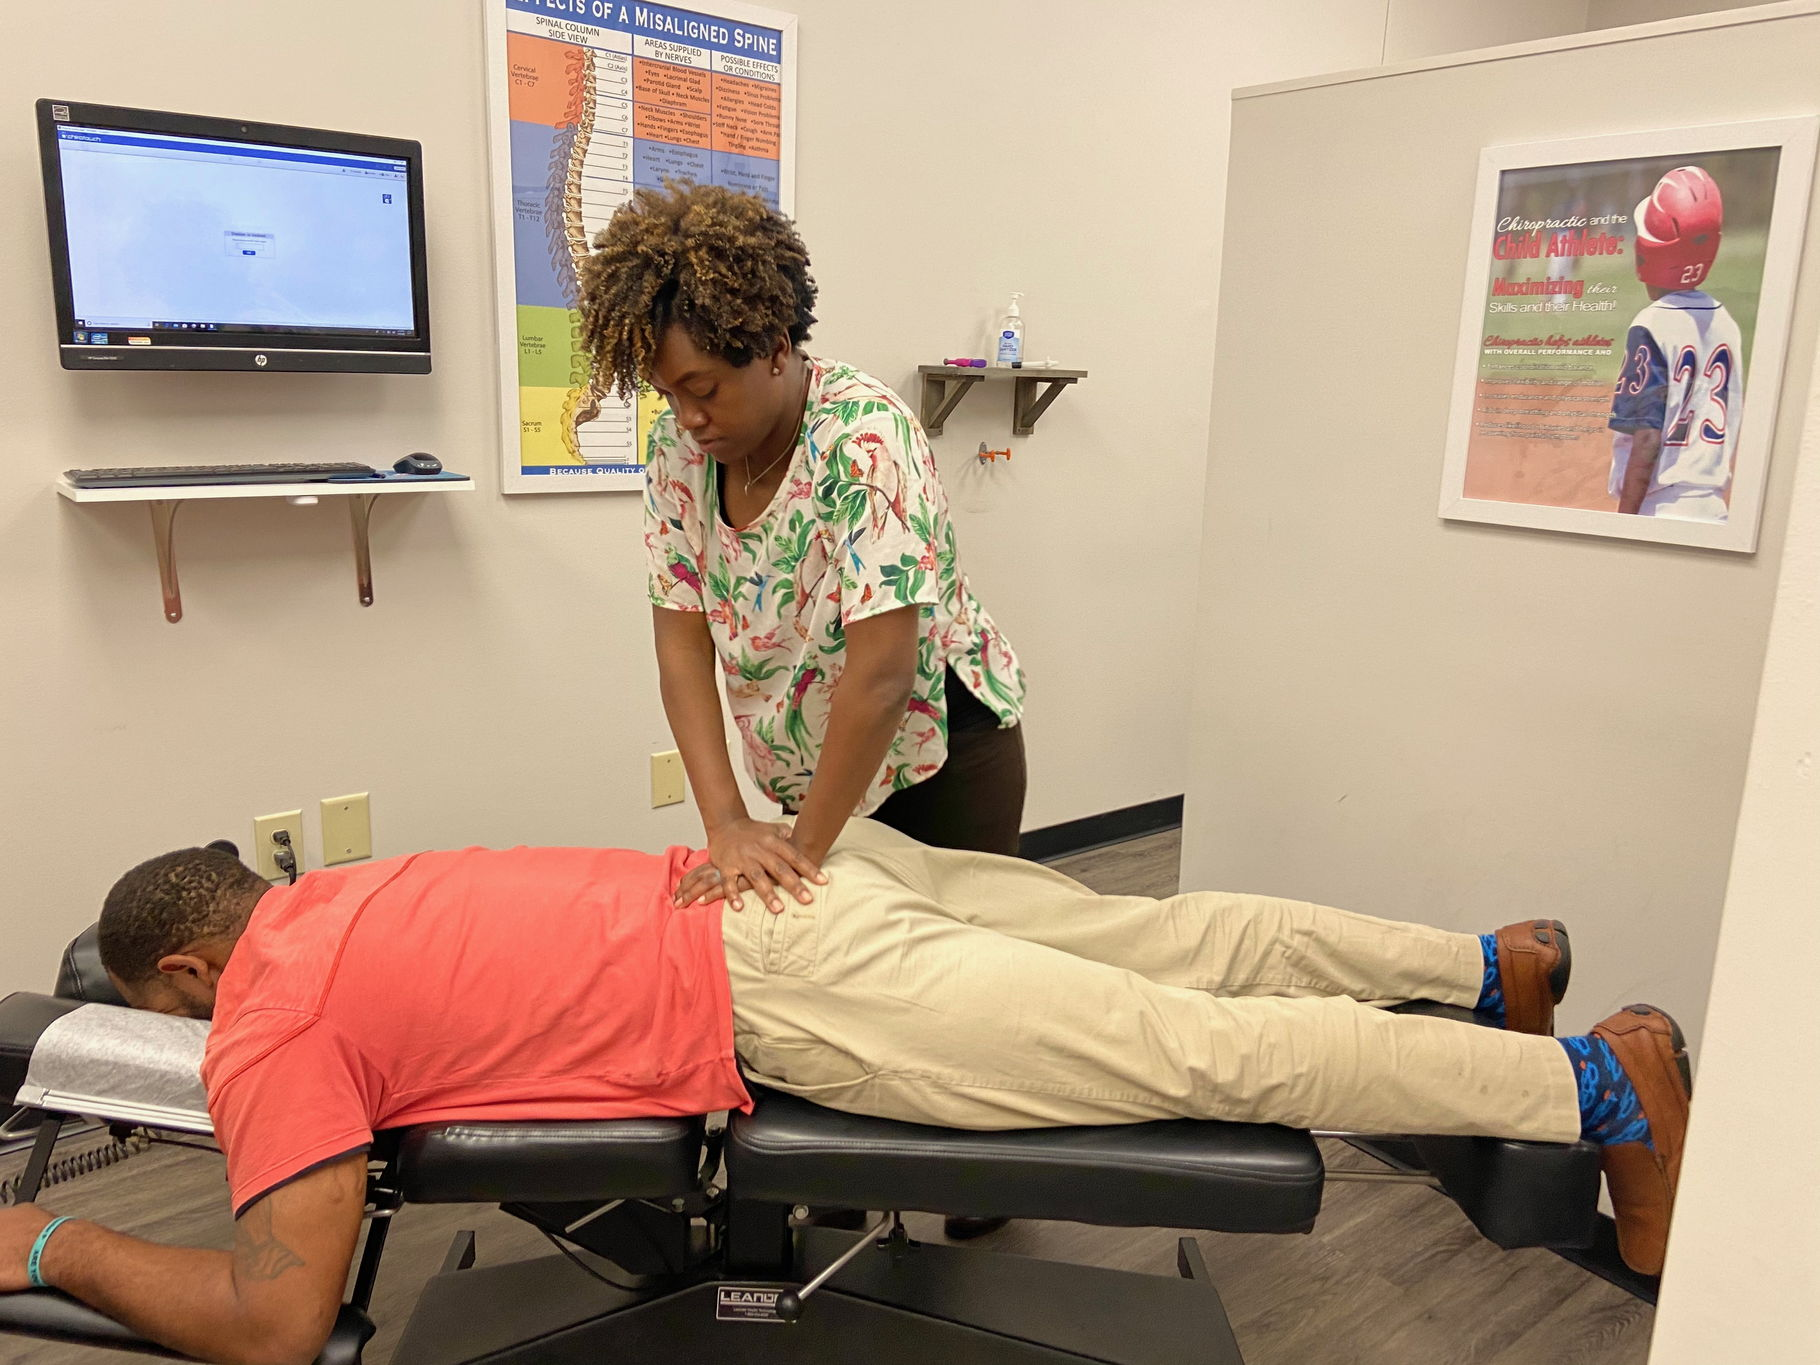 Dr. Patrice Thompson - Touch of Life Family Chiropractic